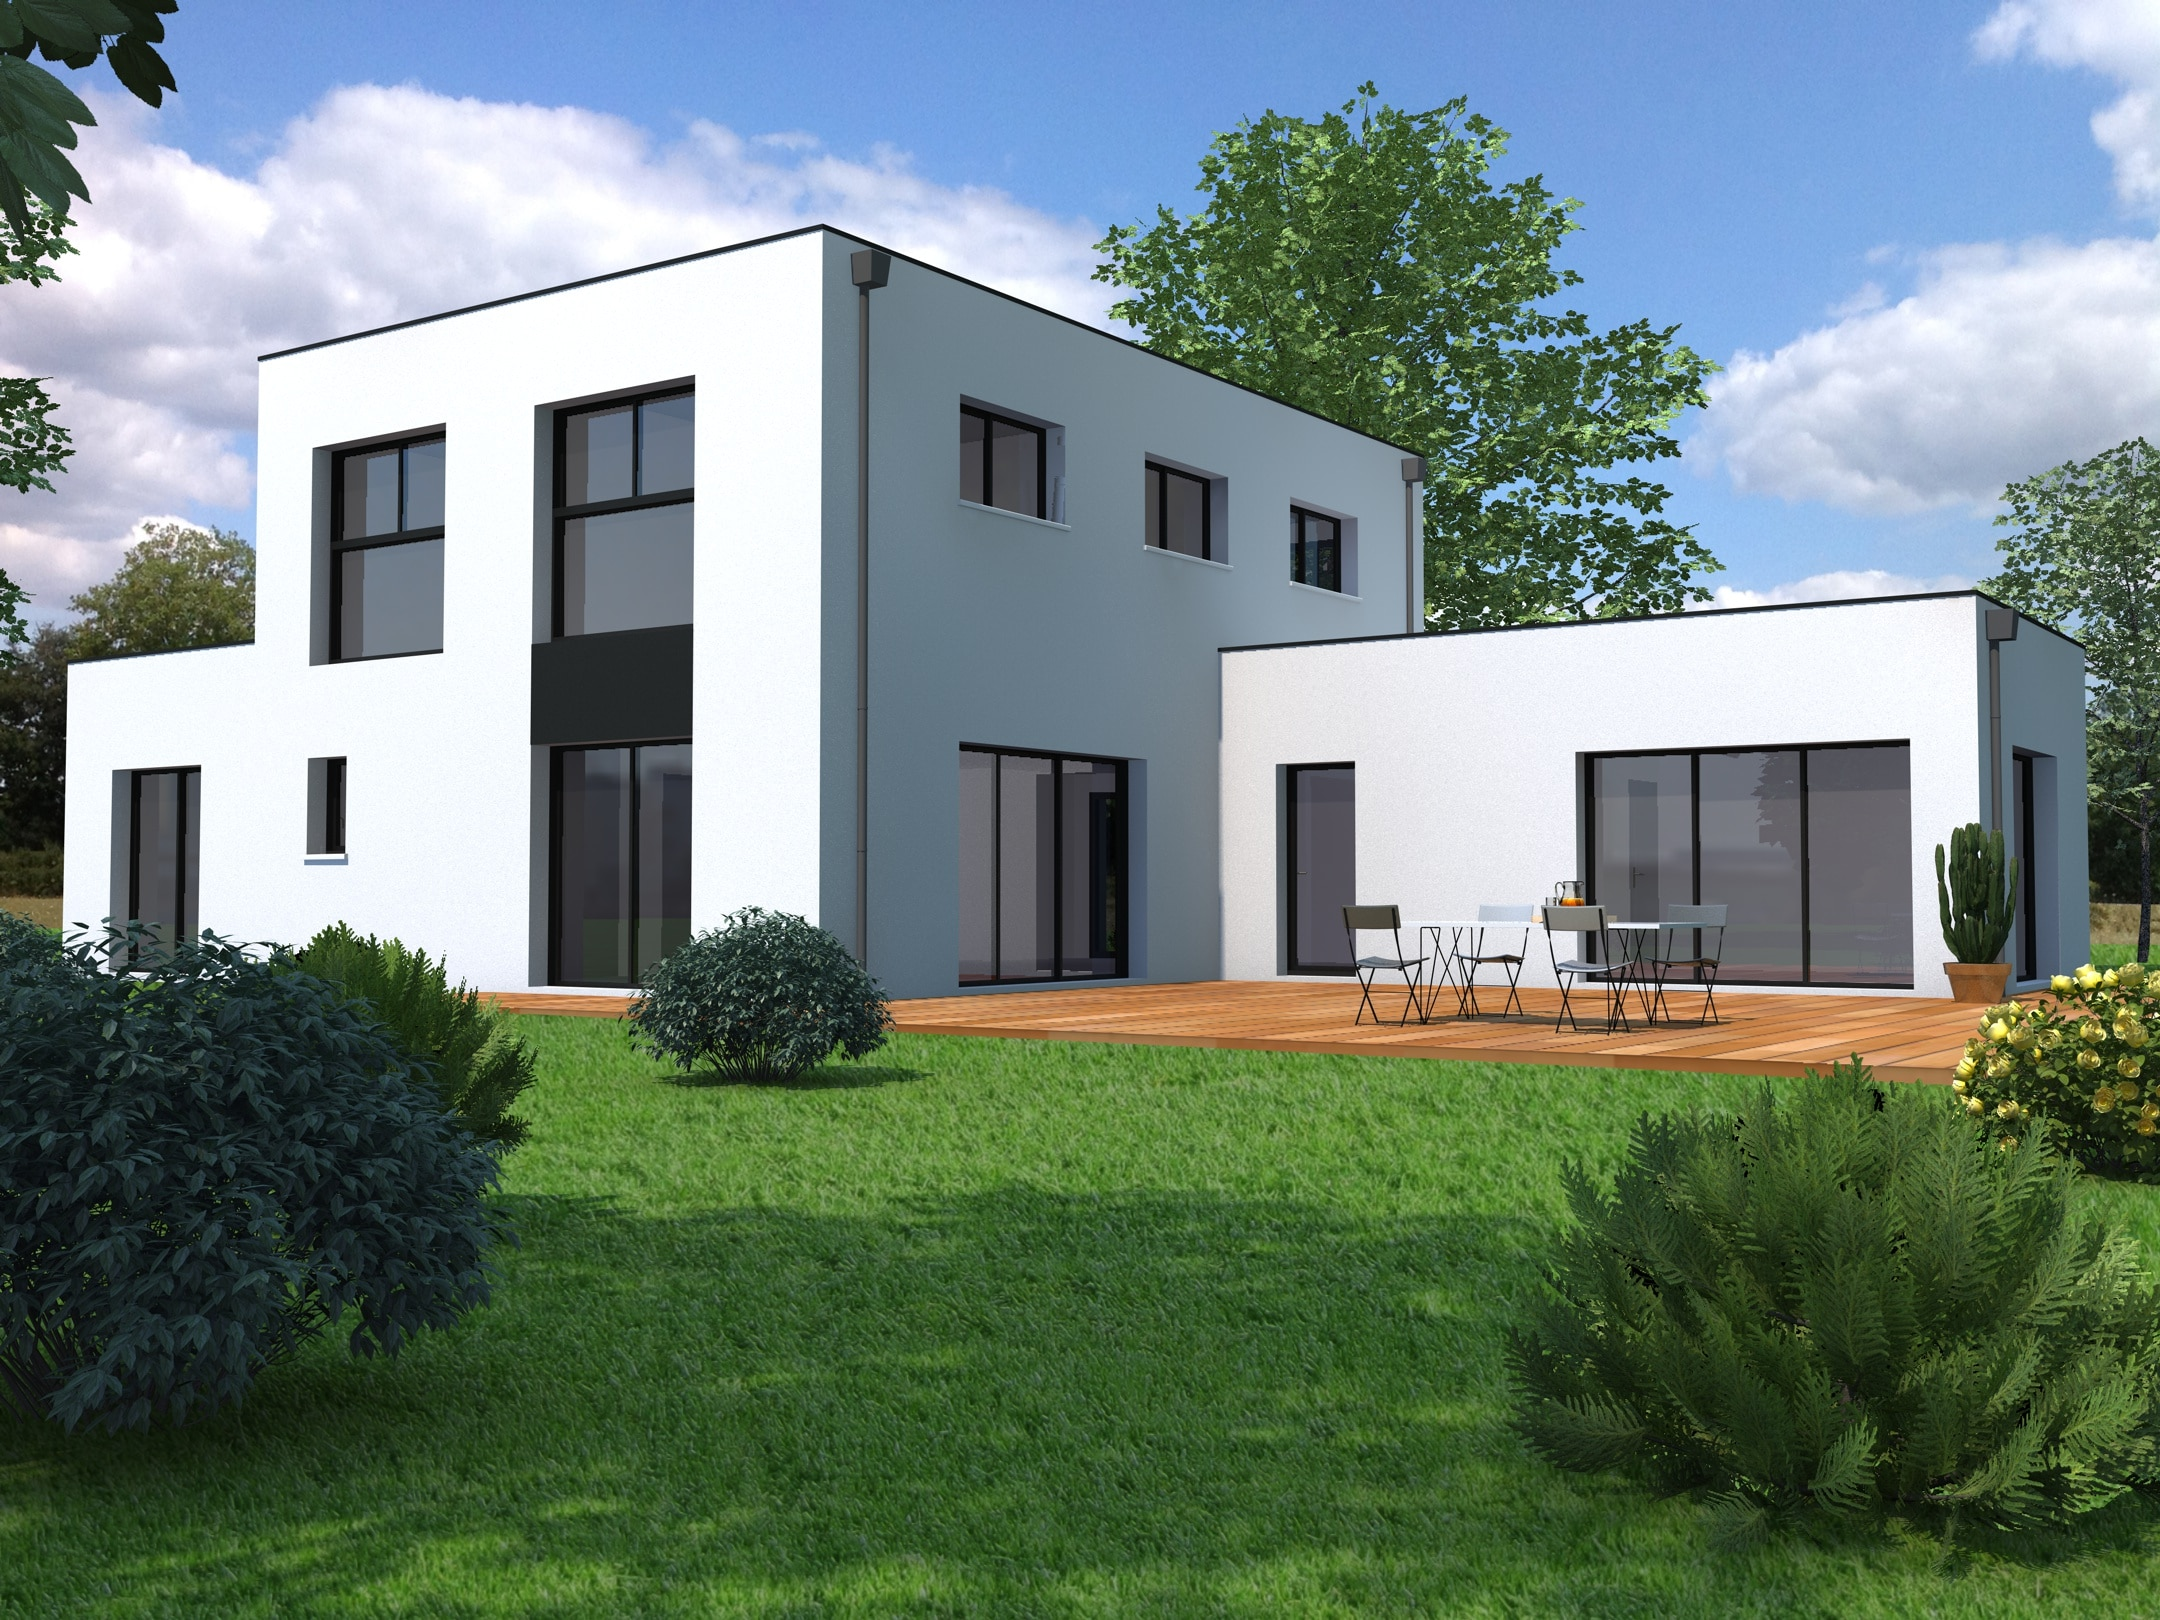 Maison Cubique Plan Et Photos Mf Construction